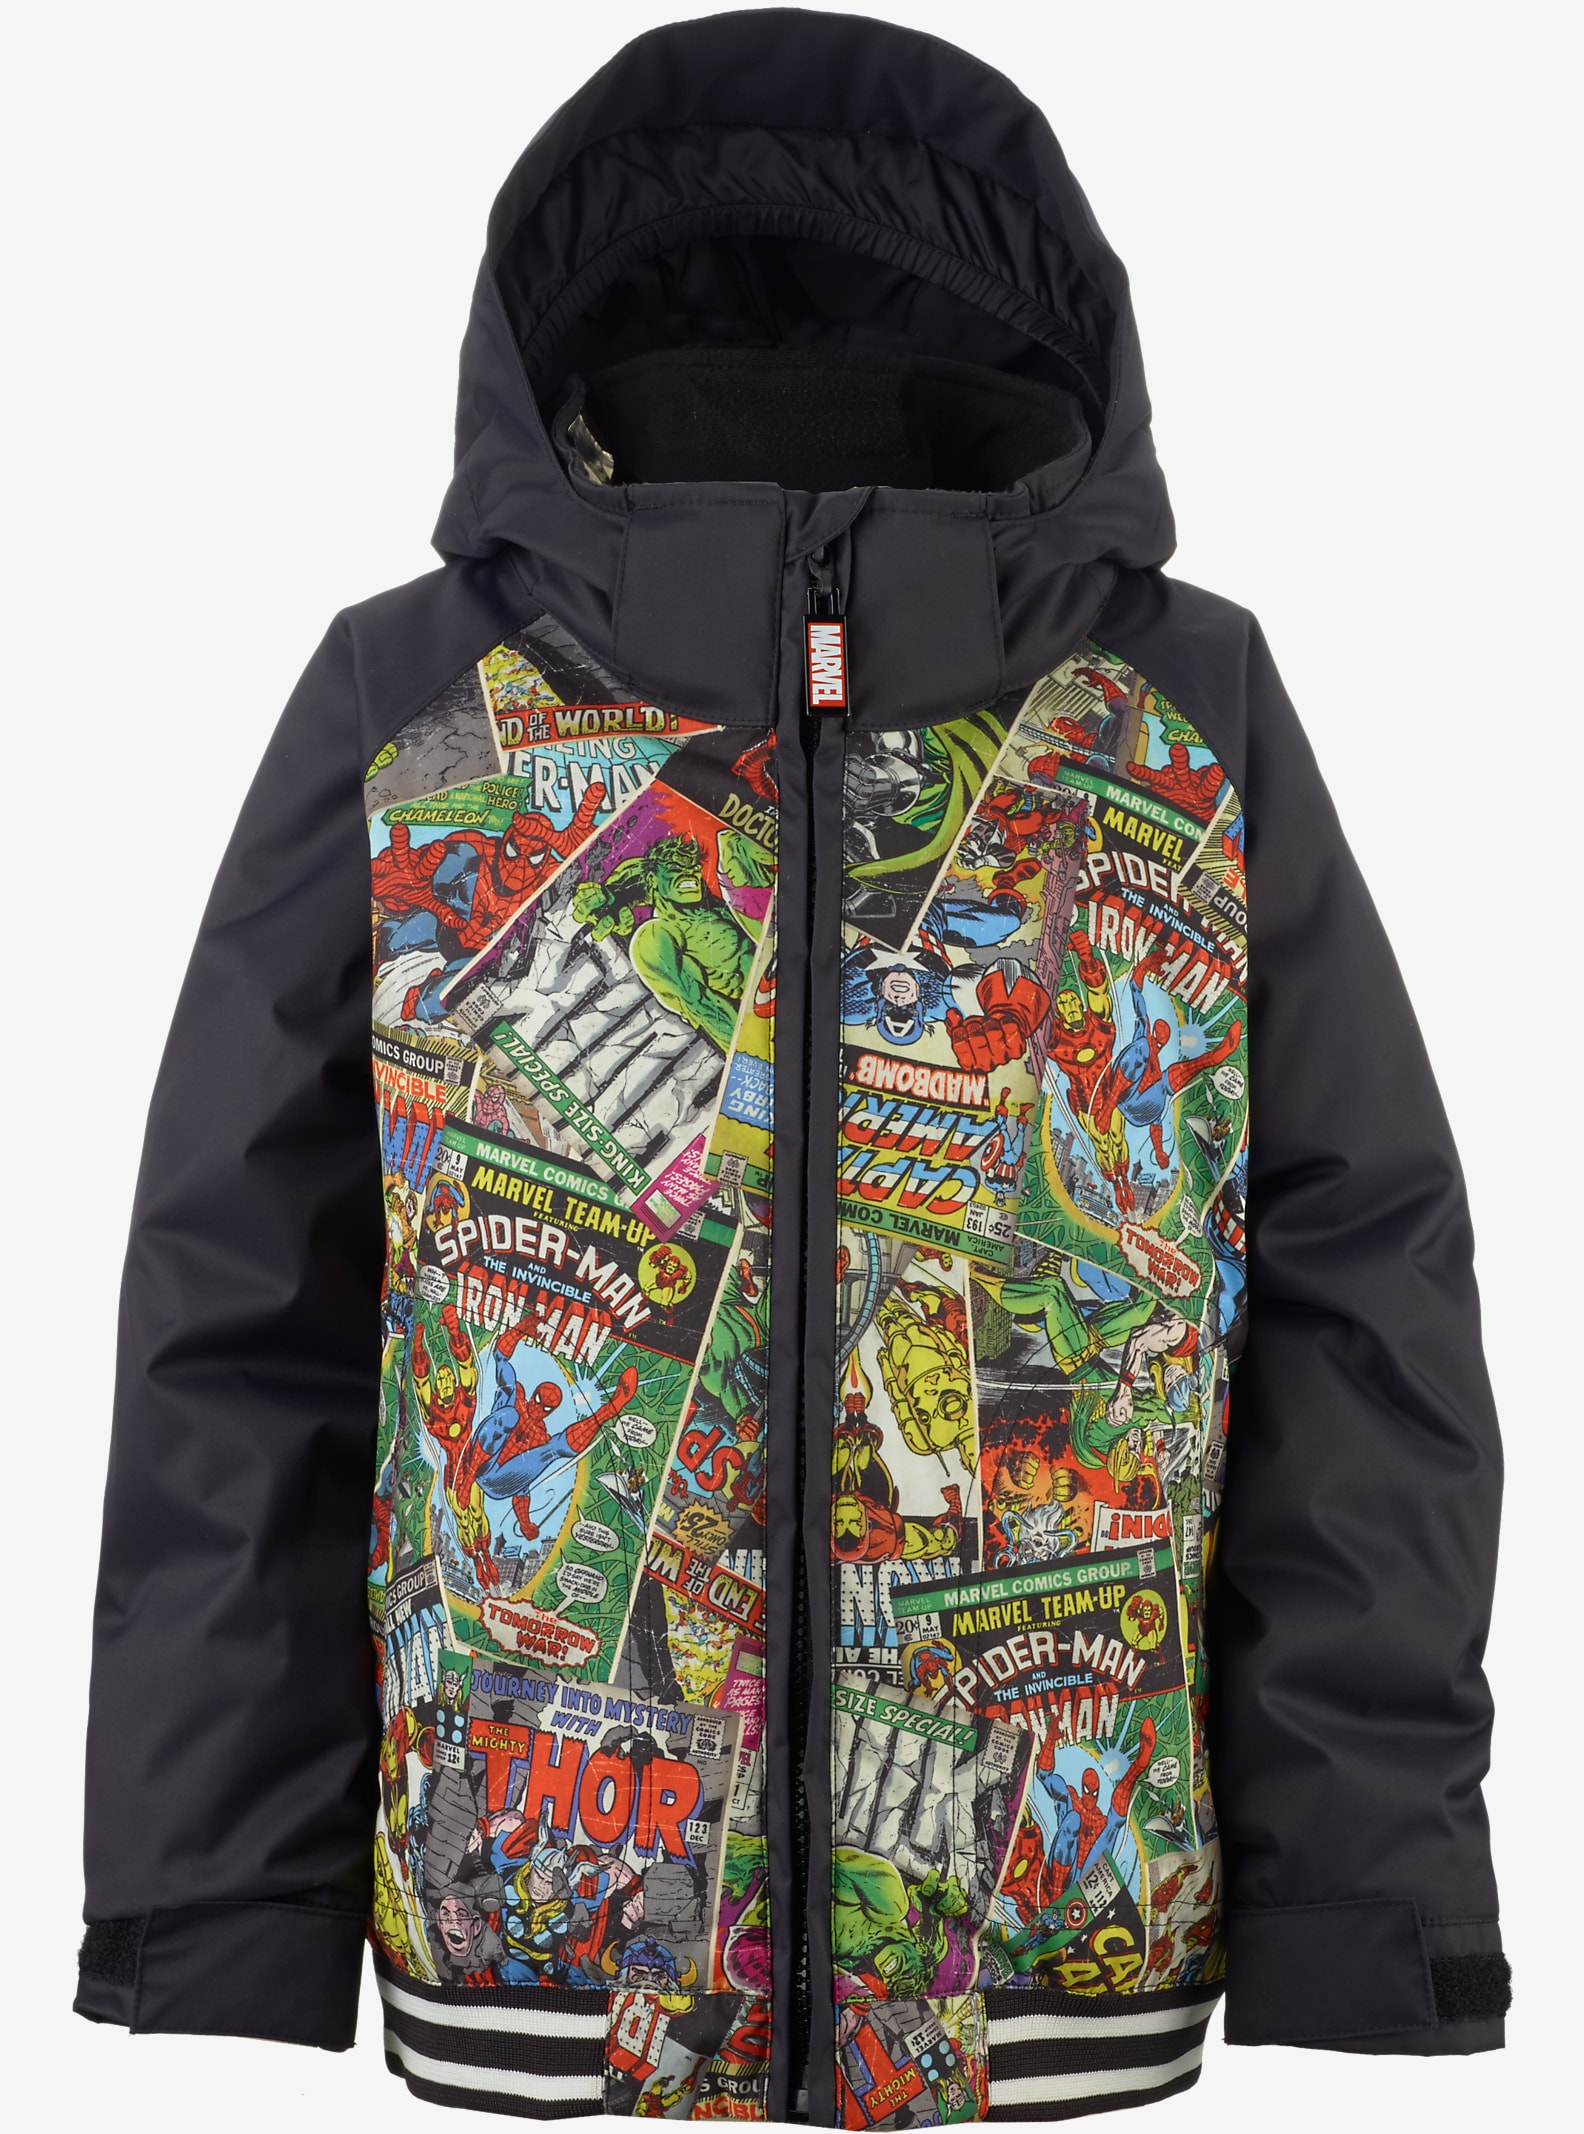 Marvel® x Burton Minishred Game Day Jacke für Jungen angezeigt in Marvel / True Black © 2016 MARVEL